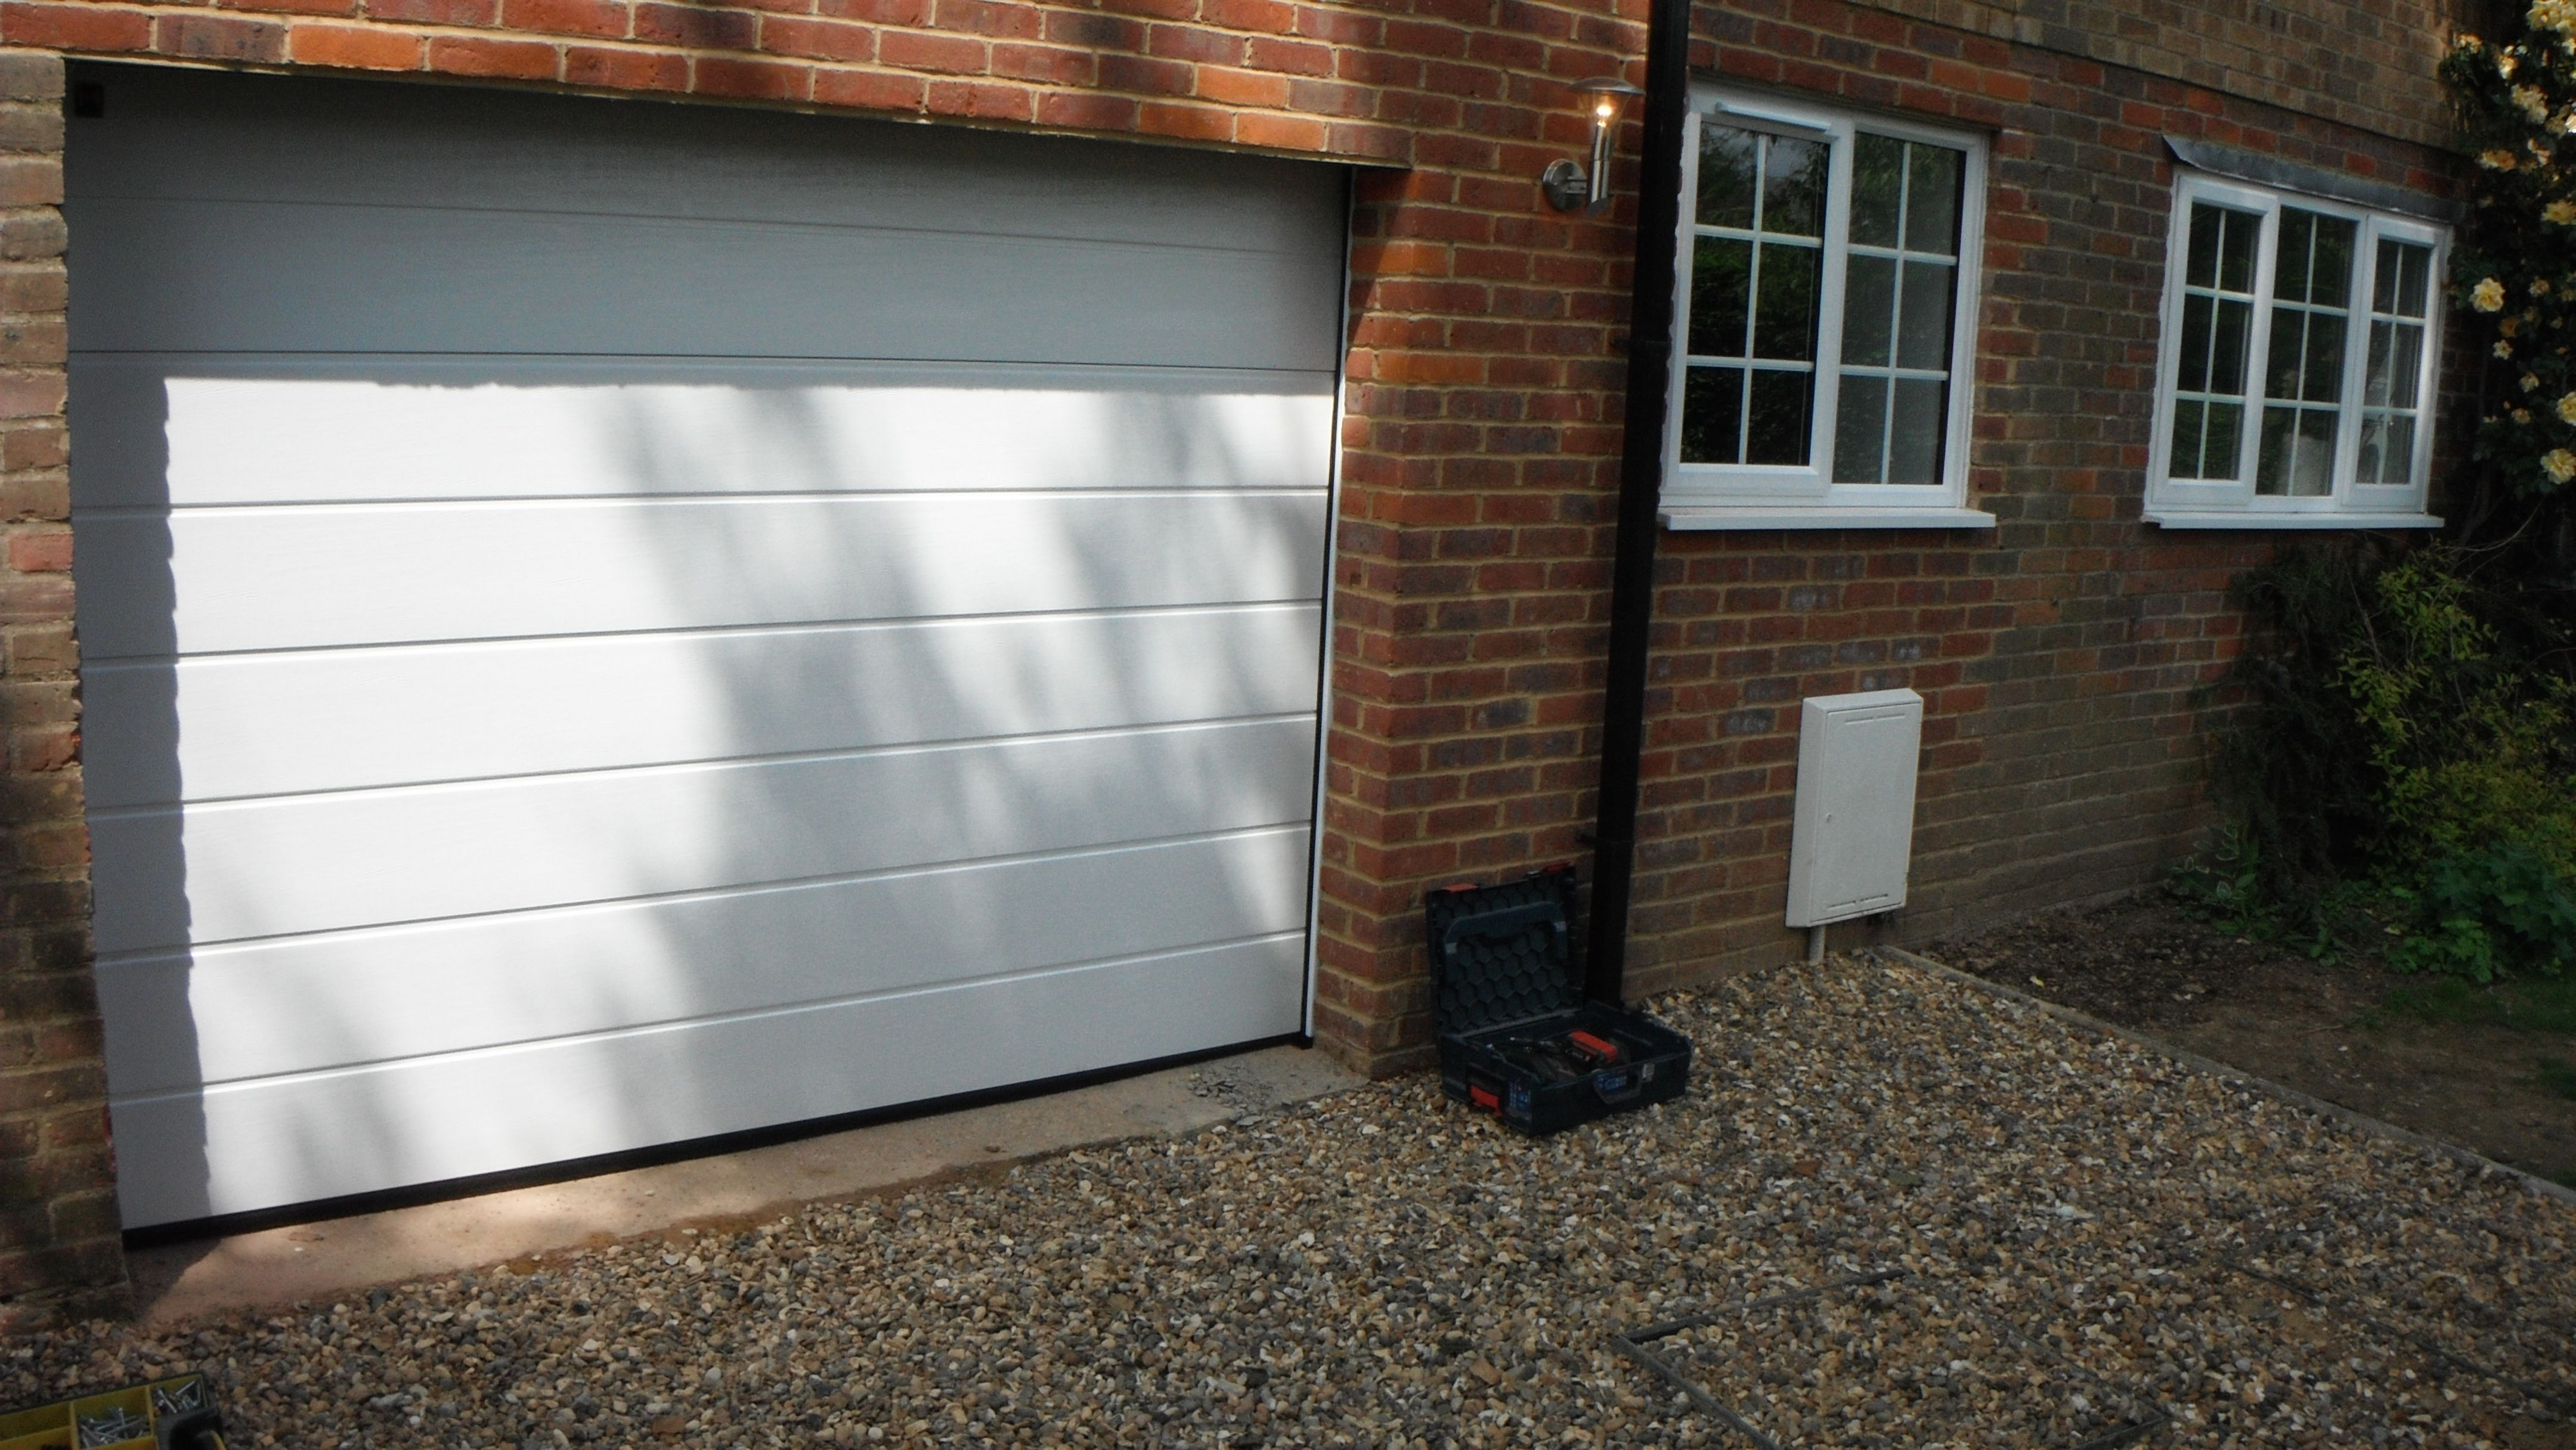 Hormann M Ribbed Sectional Garage Door In White Smooth